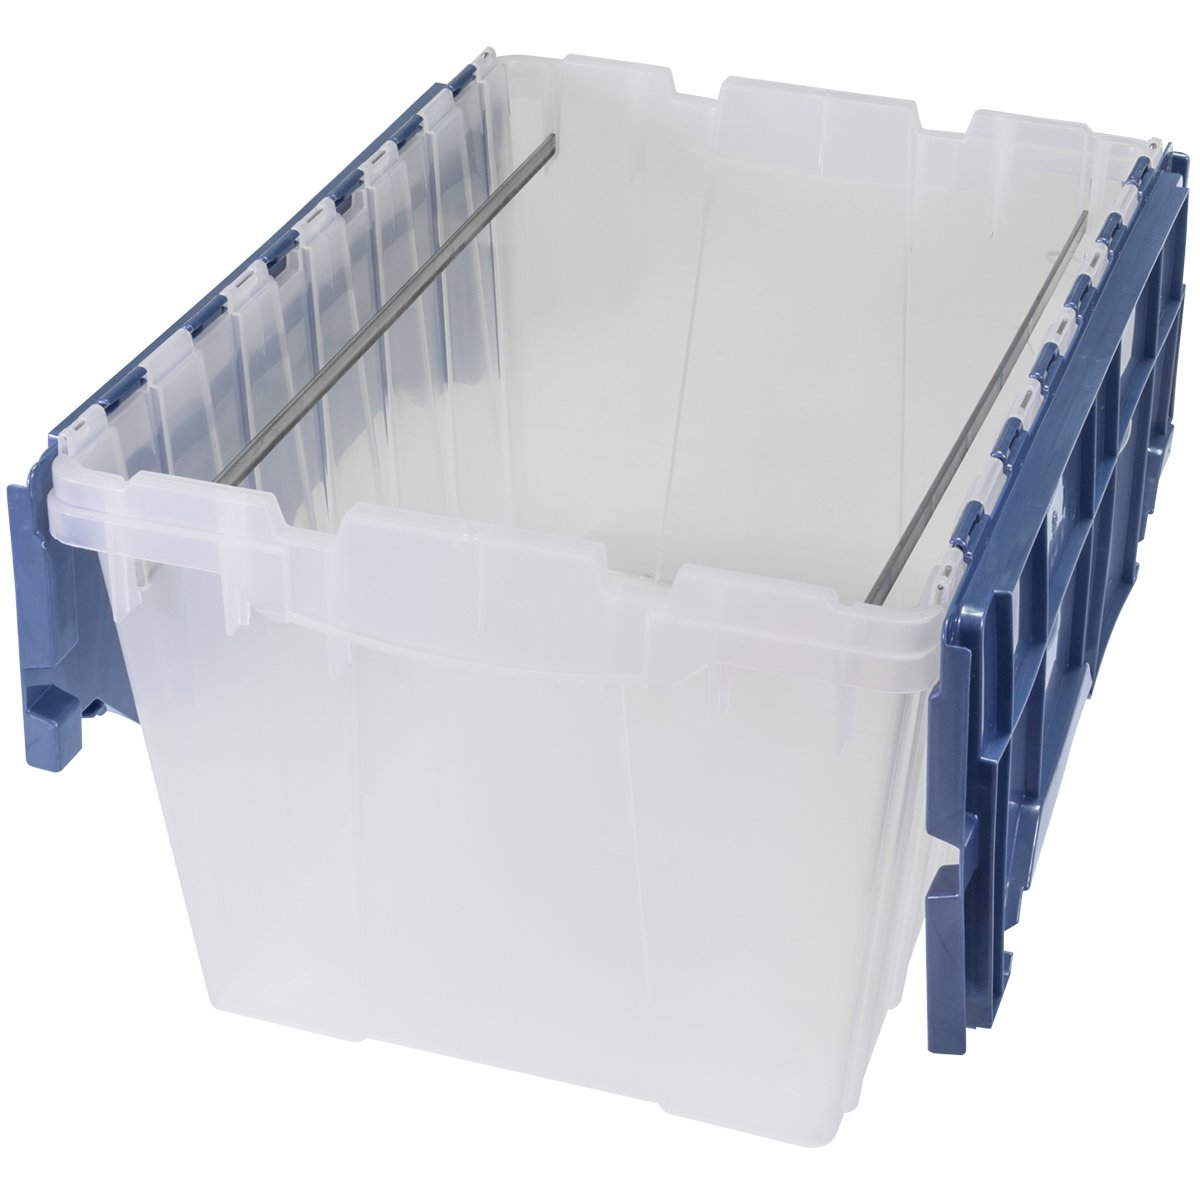 Akro-Mils 66486 FILEB 12-Gallon Plastic Storage Hanging File Box with Attached Lid, 21-1/2-Inch by 15-Inch by 12-1/2-Inch, Semi-Clear, Pack of 1 by Akro-Mils